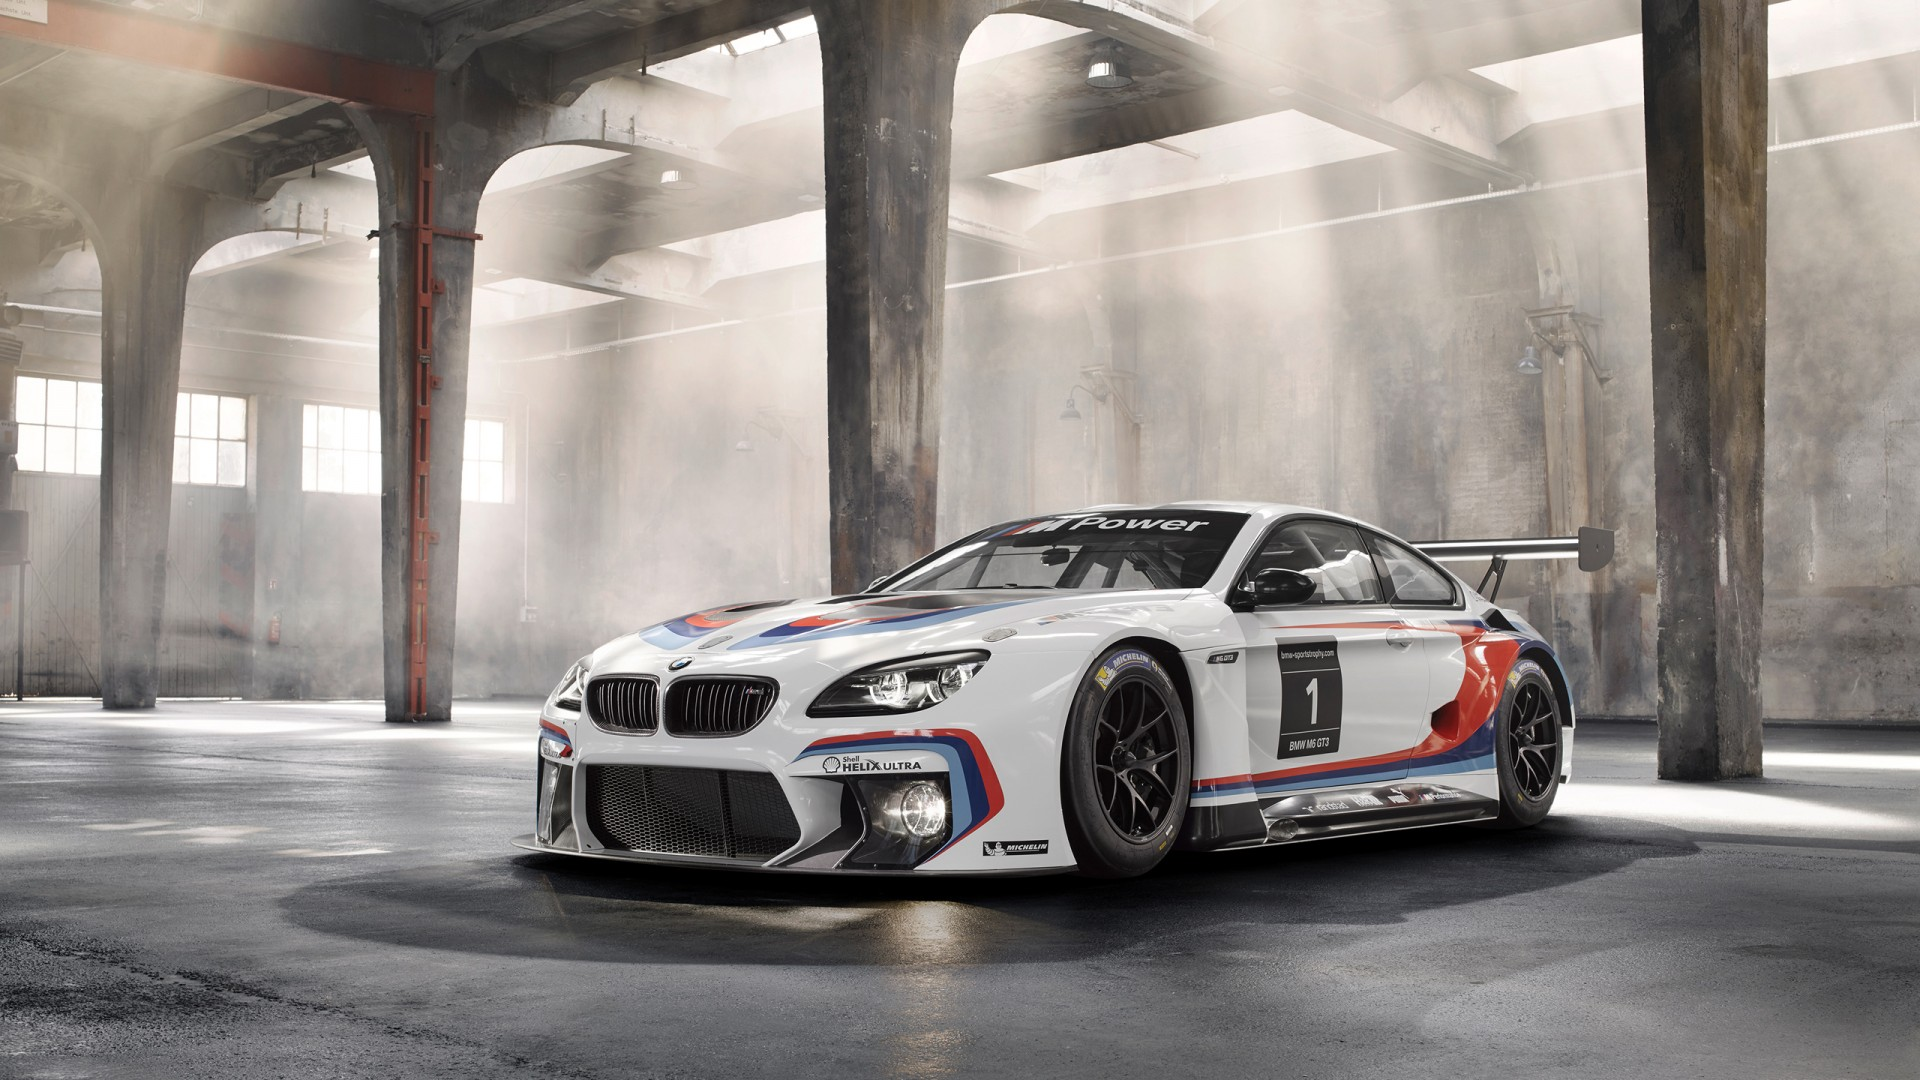 2015 bmw m6 gt3 f13 sport wallpaper hd car wallpapers. Black Bedroom Furniture Sets. Home Design Ideas